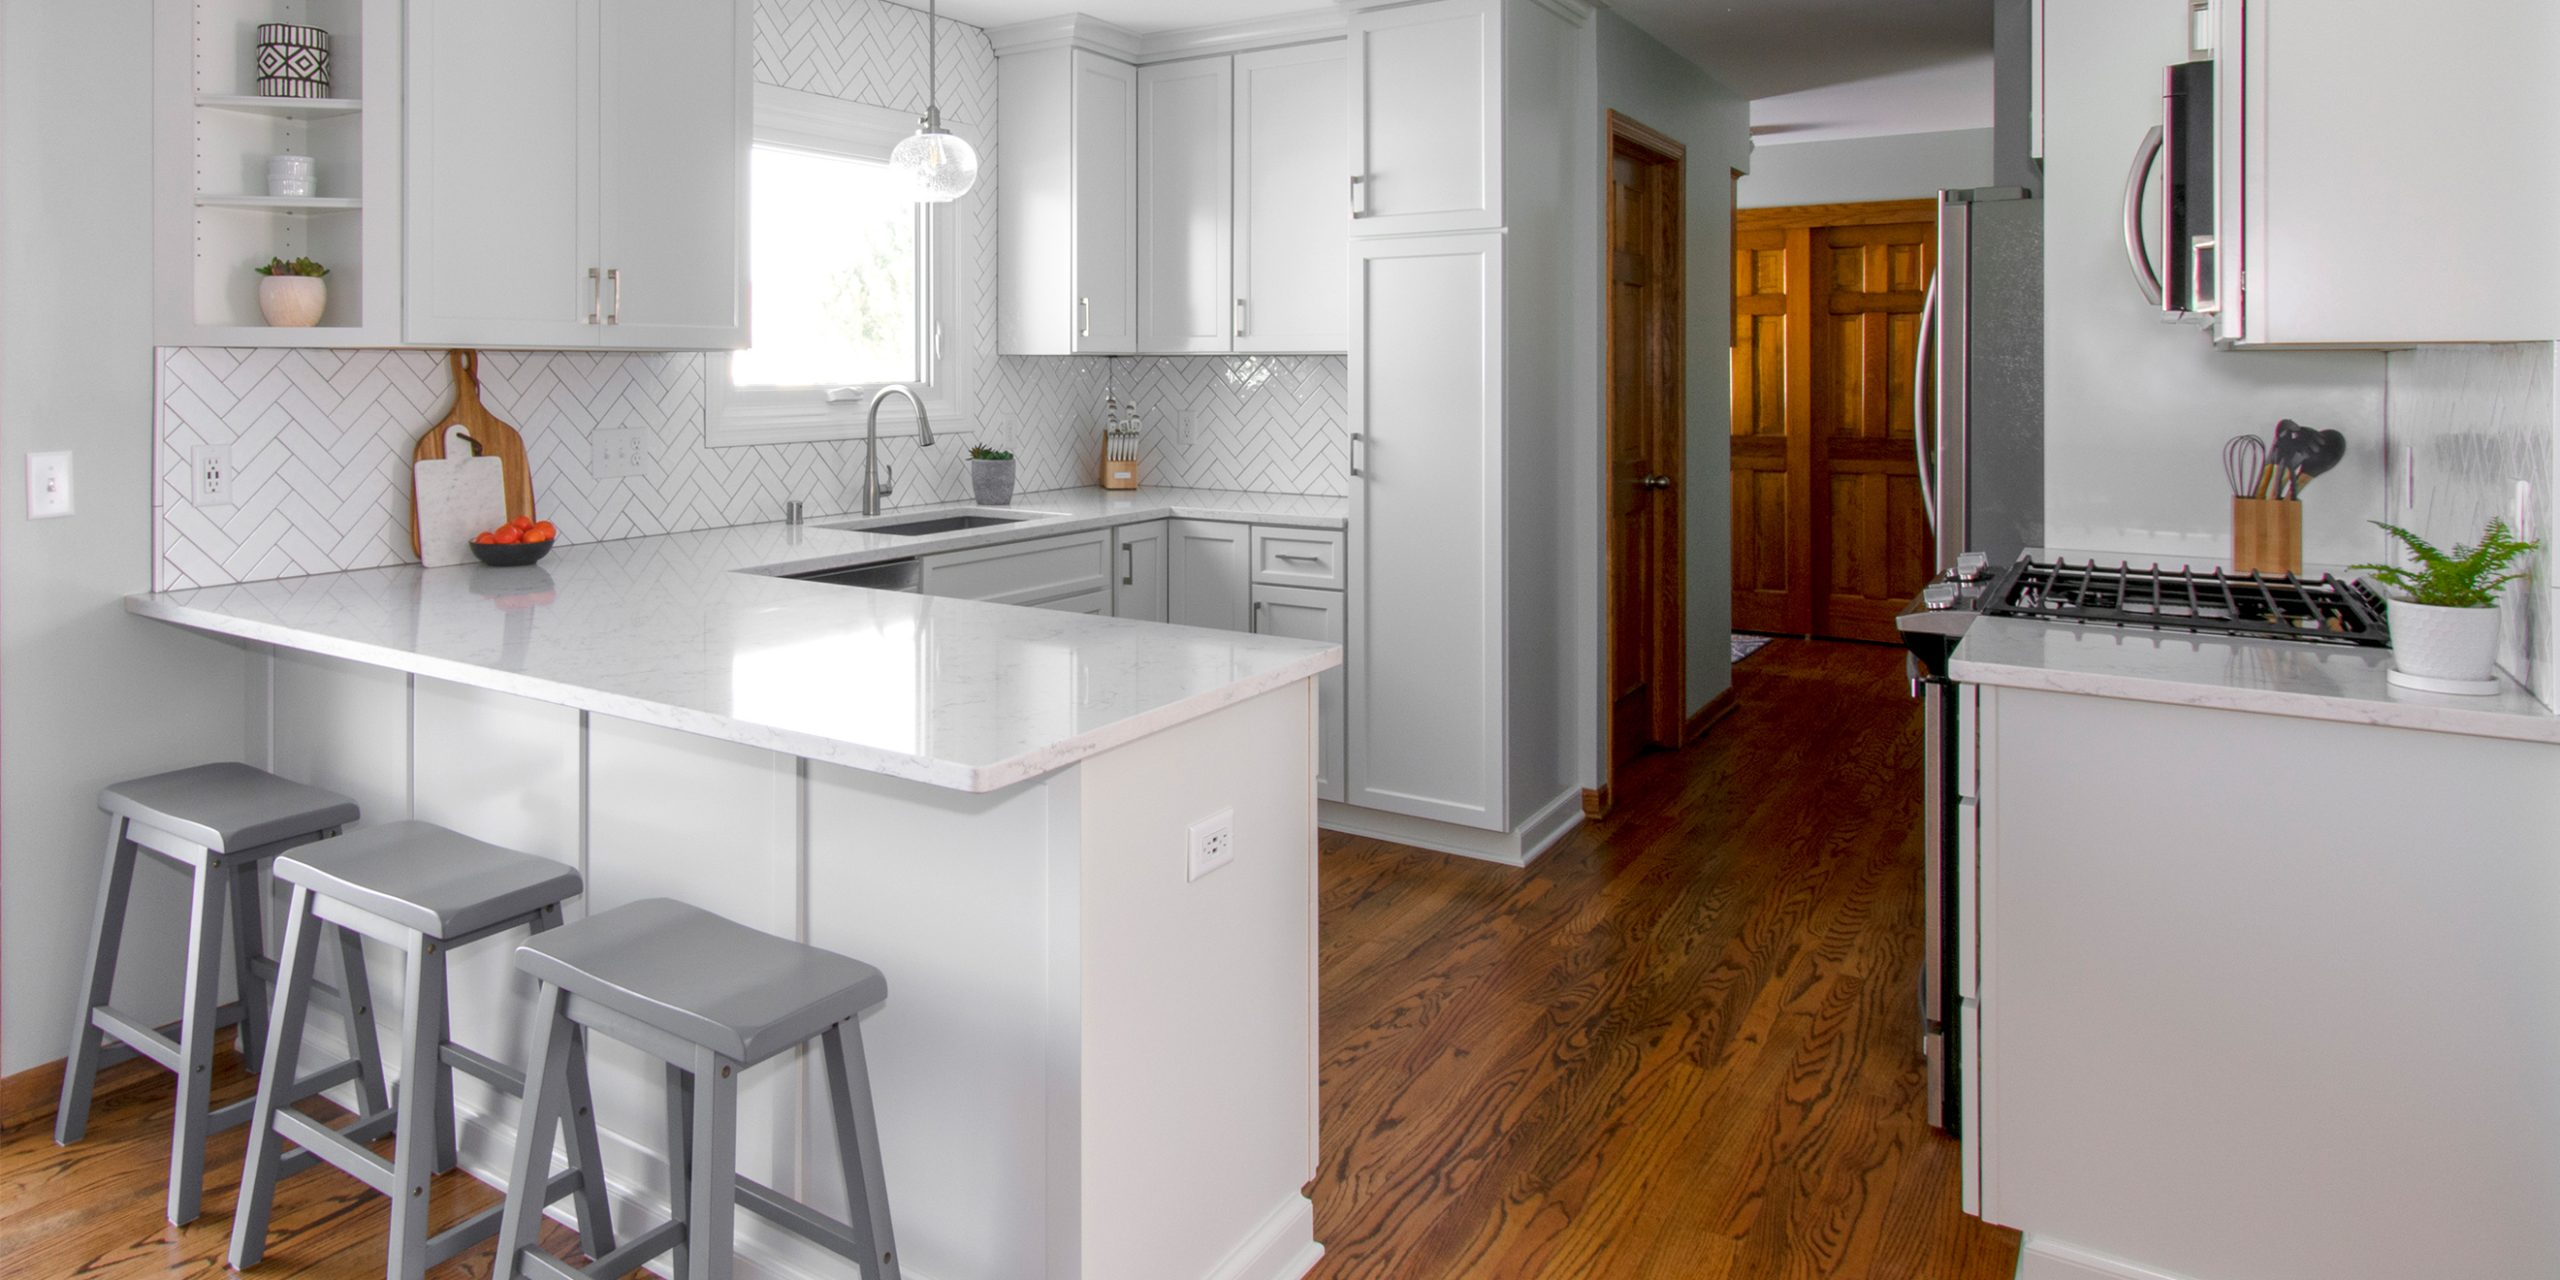 Waukesha kitchen remodel with white cabinets, counters, herringbone backsplash, pendant light, hardwood floors